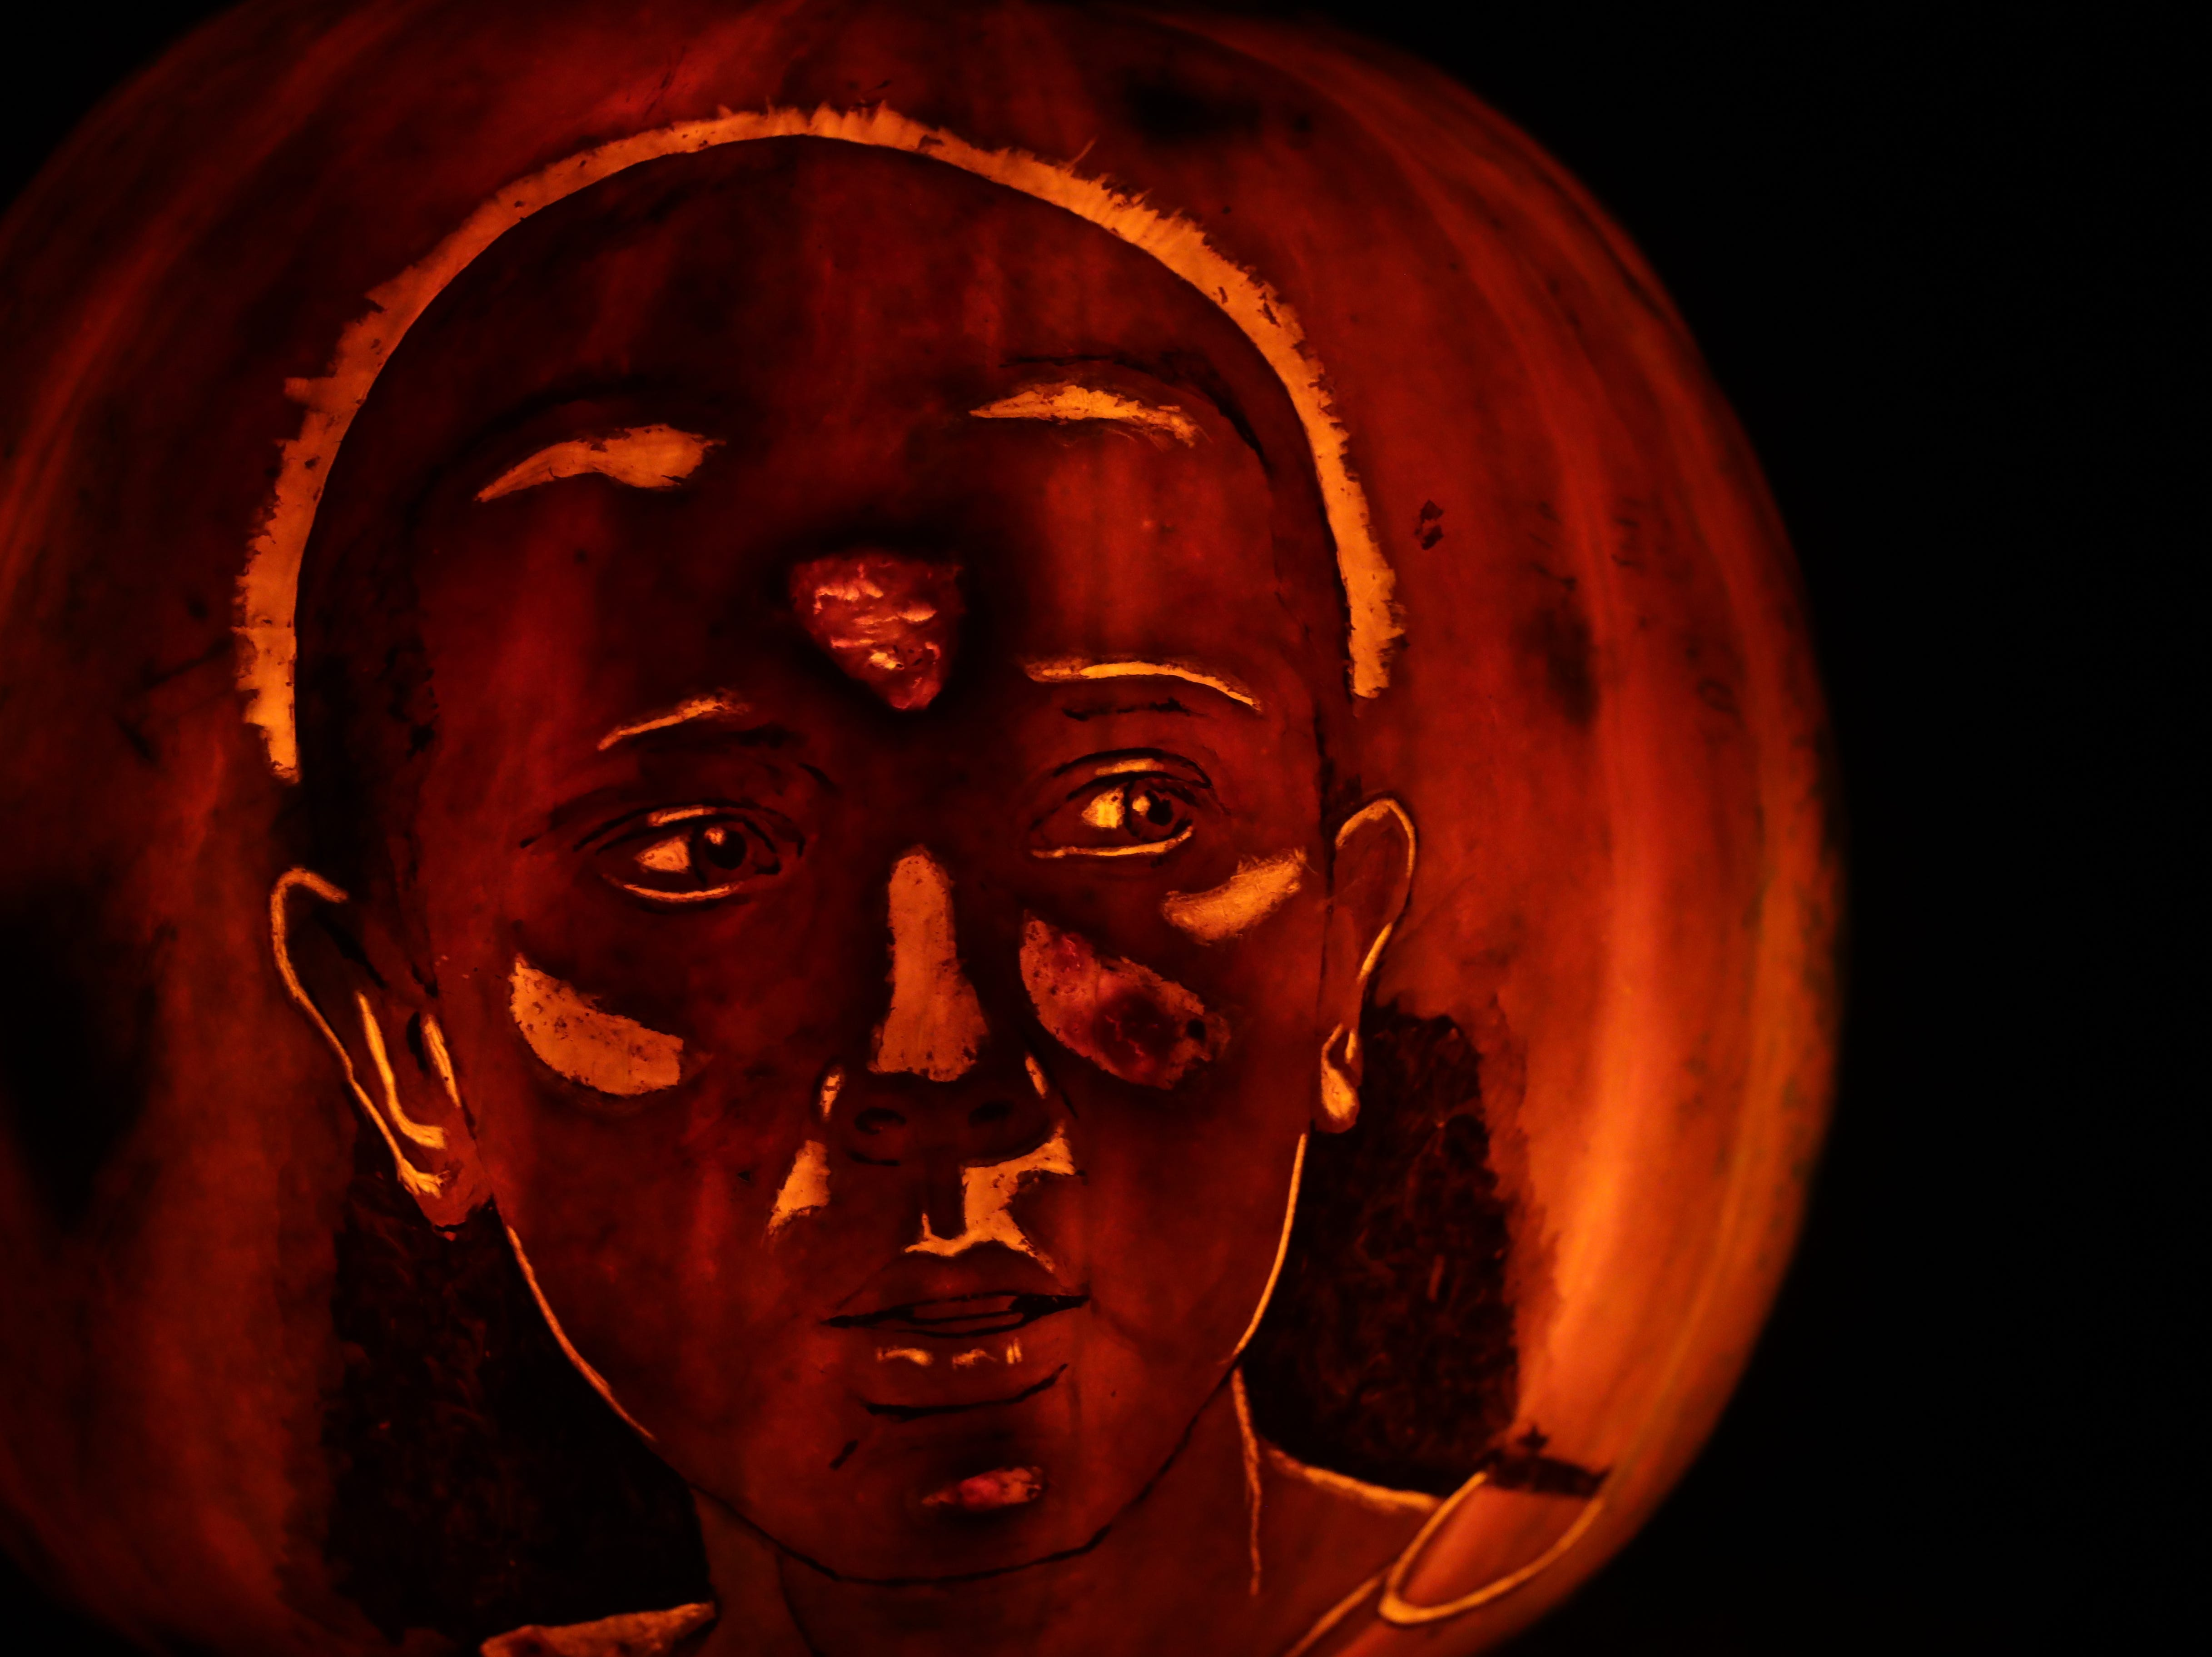 A tribute to Stranger Things appears on a pumpkin at this year's Jack O' Lantern Spectacular. Oct. 9, 2018